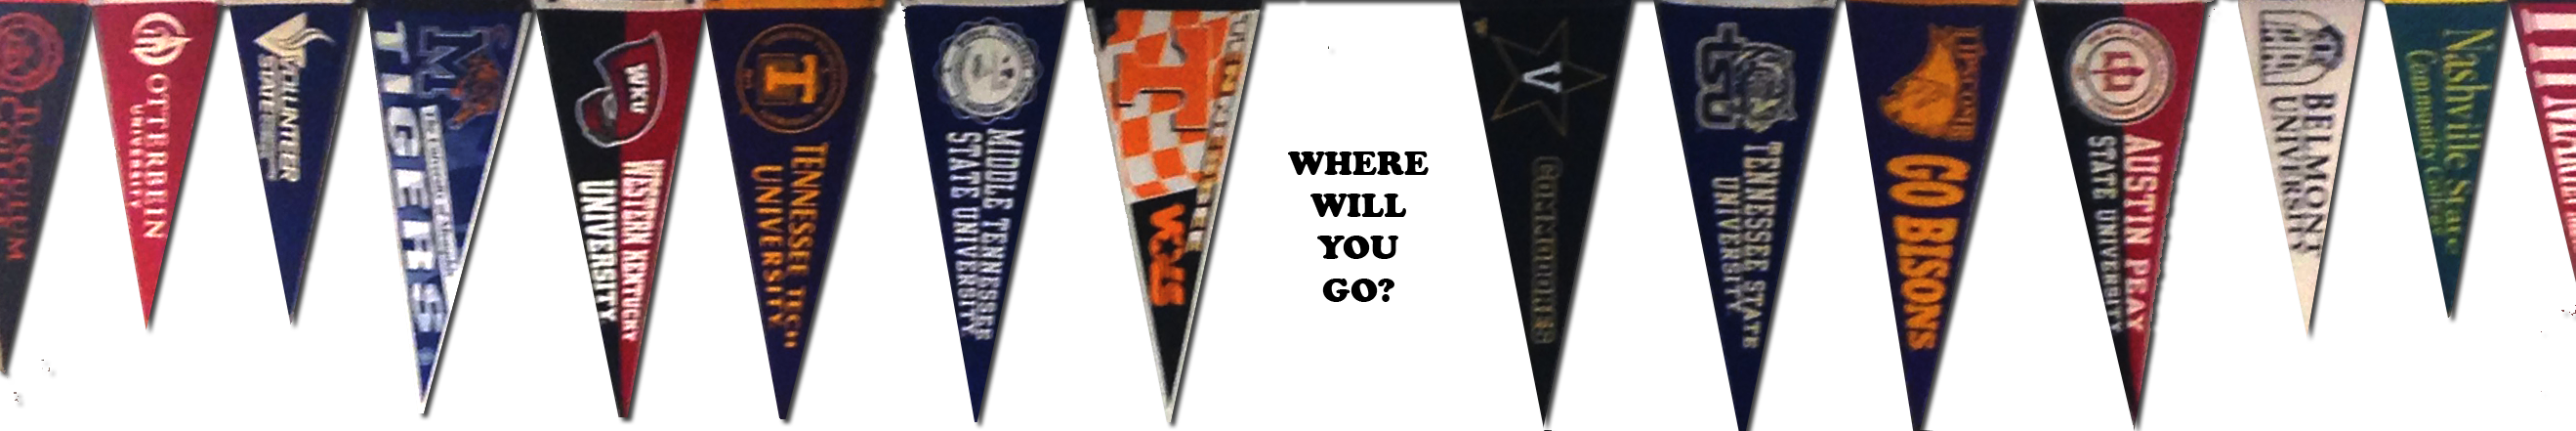 PENNANTS BROWN